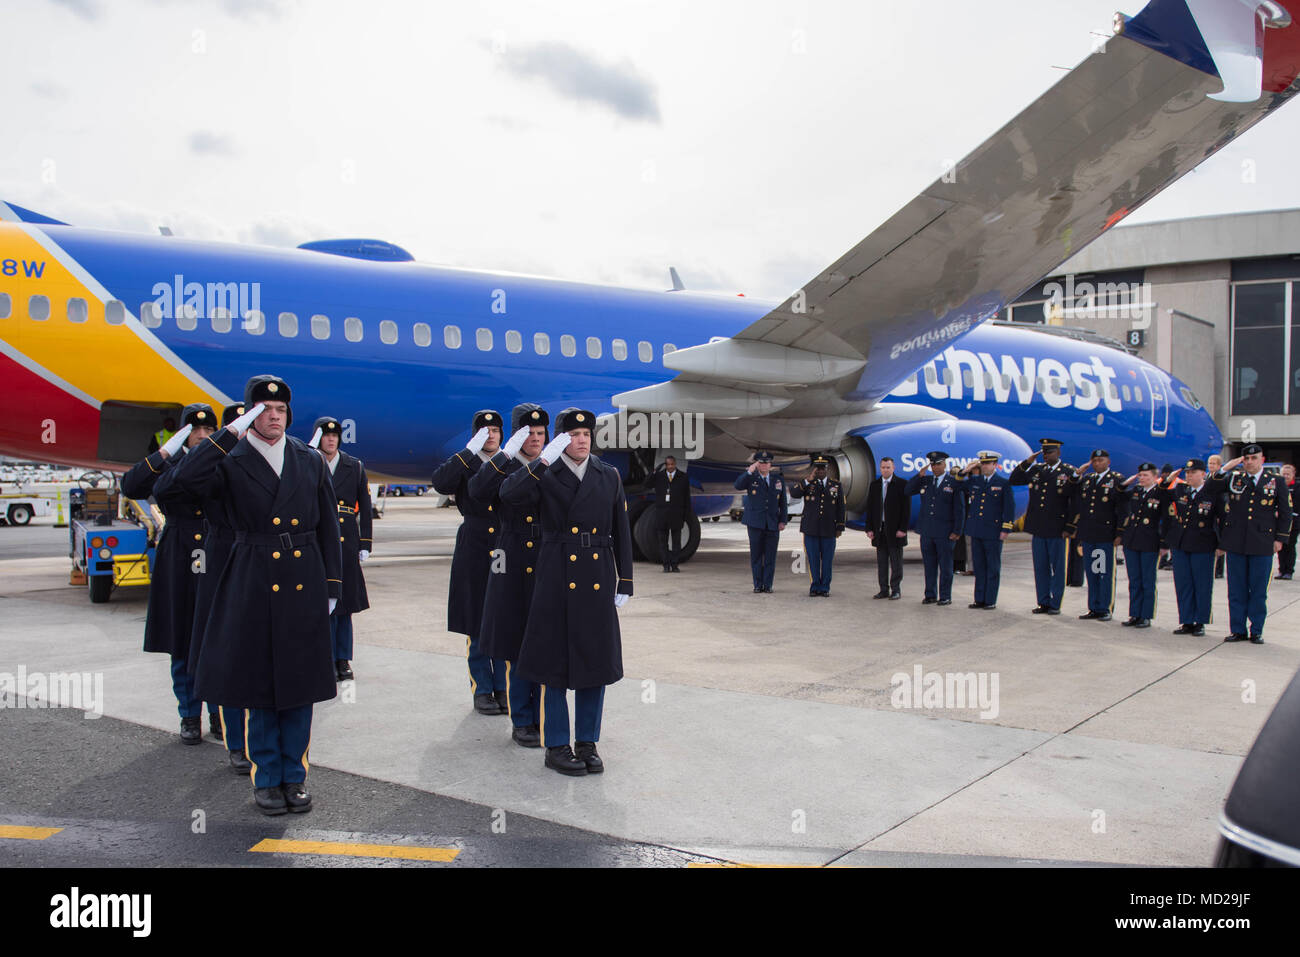 Soldiers assigned to the 3d U.S. Infantry Regiment (The Old Guard), conduct a Plane Side Honors at Ronald Reagan Washington National Airport in Arlington, Va., March 14, 2018. Honors were rendered for Sgt. 1st Class Ryan Kenner who perished while serving on Active Duty. (U.S. Army photos by Spc. Gabriel Silva) - Stock Image